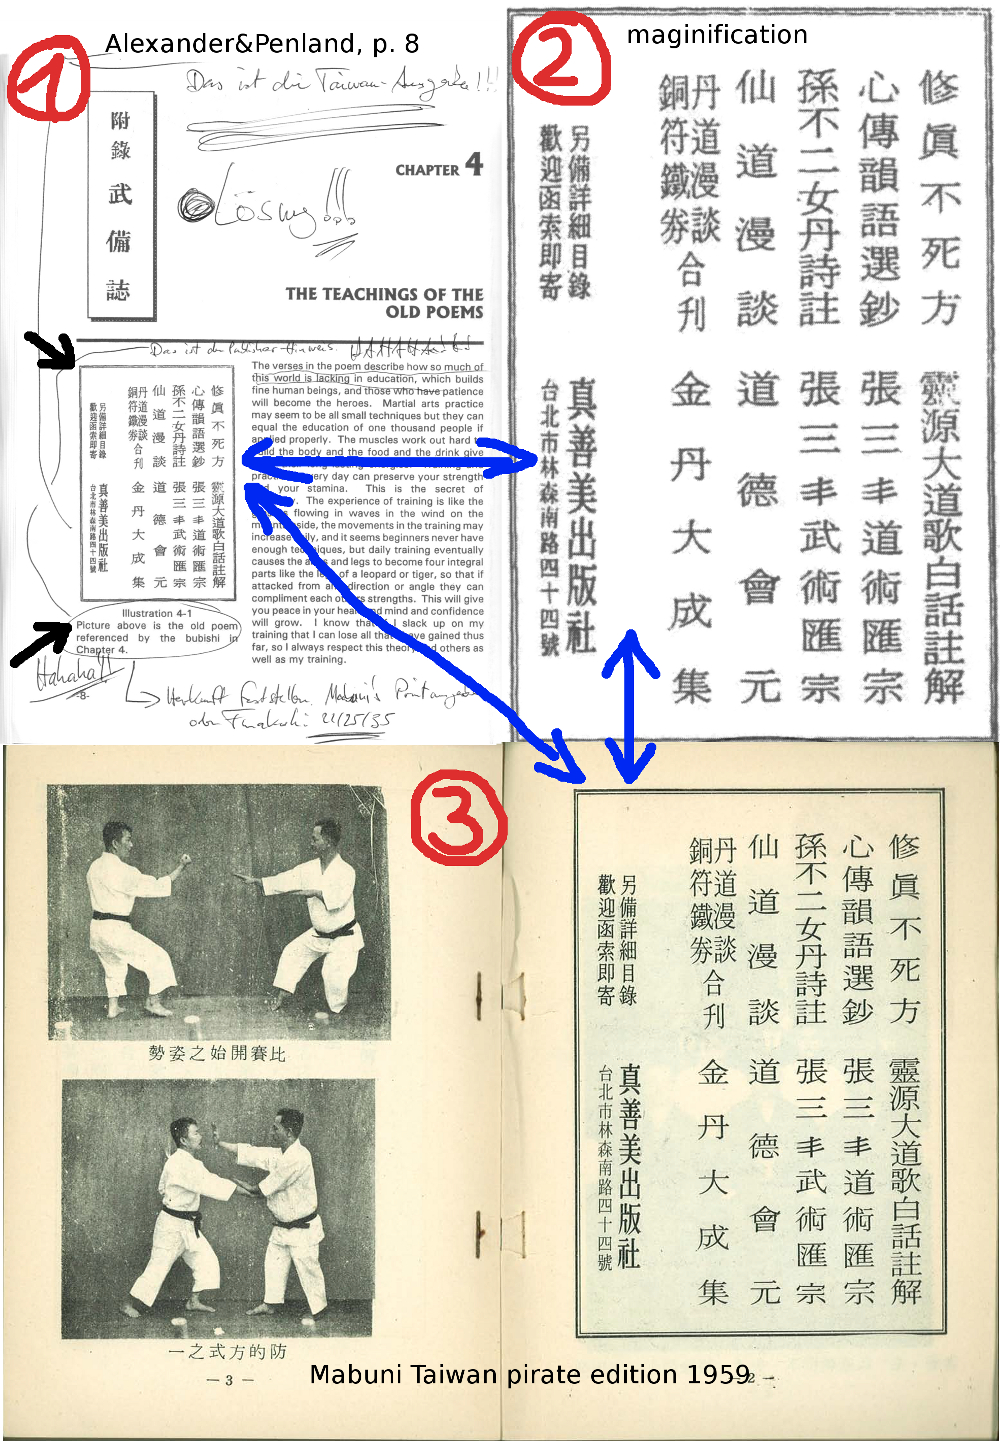 "Illustration ""old poem referenced by the bubishi"", which in fact shows publication data found on page 2 of the 1959 Taiwan pirate edition of Mabuni Kenwa's 1934 work."